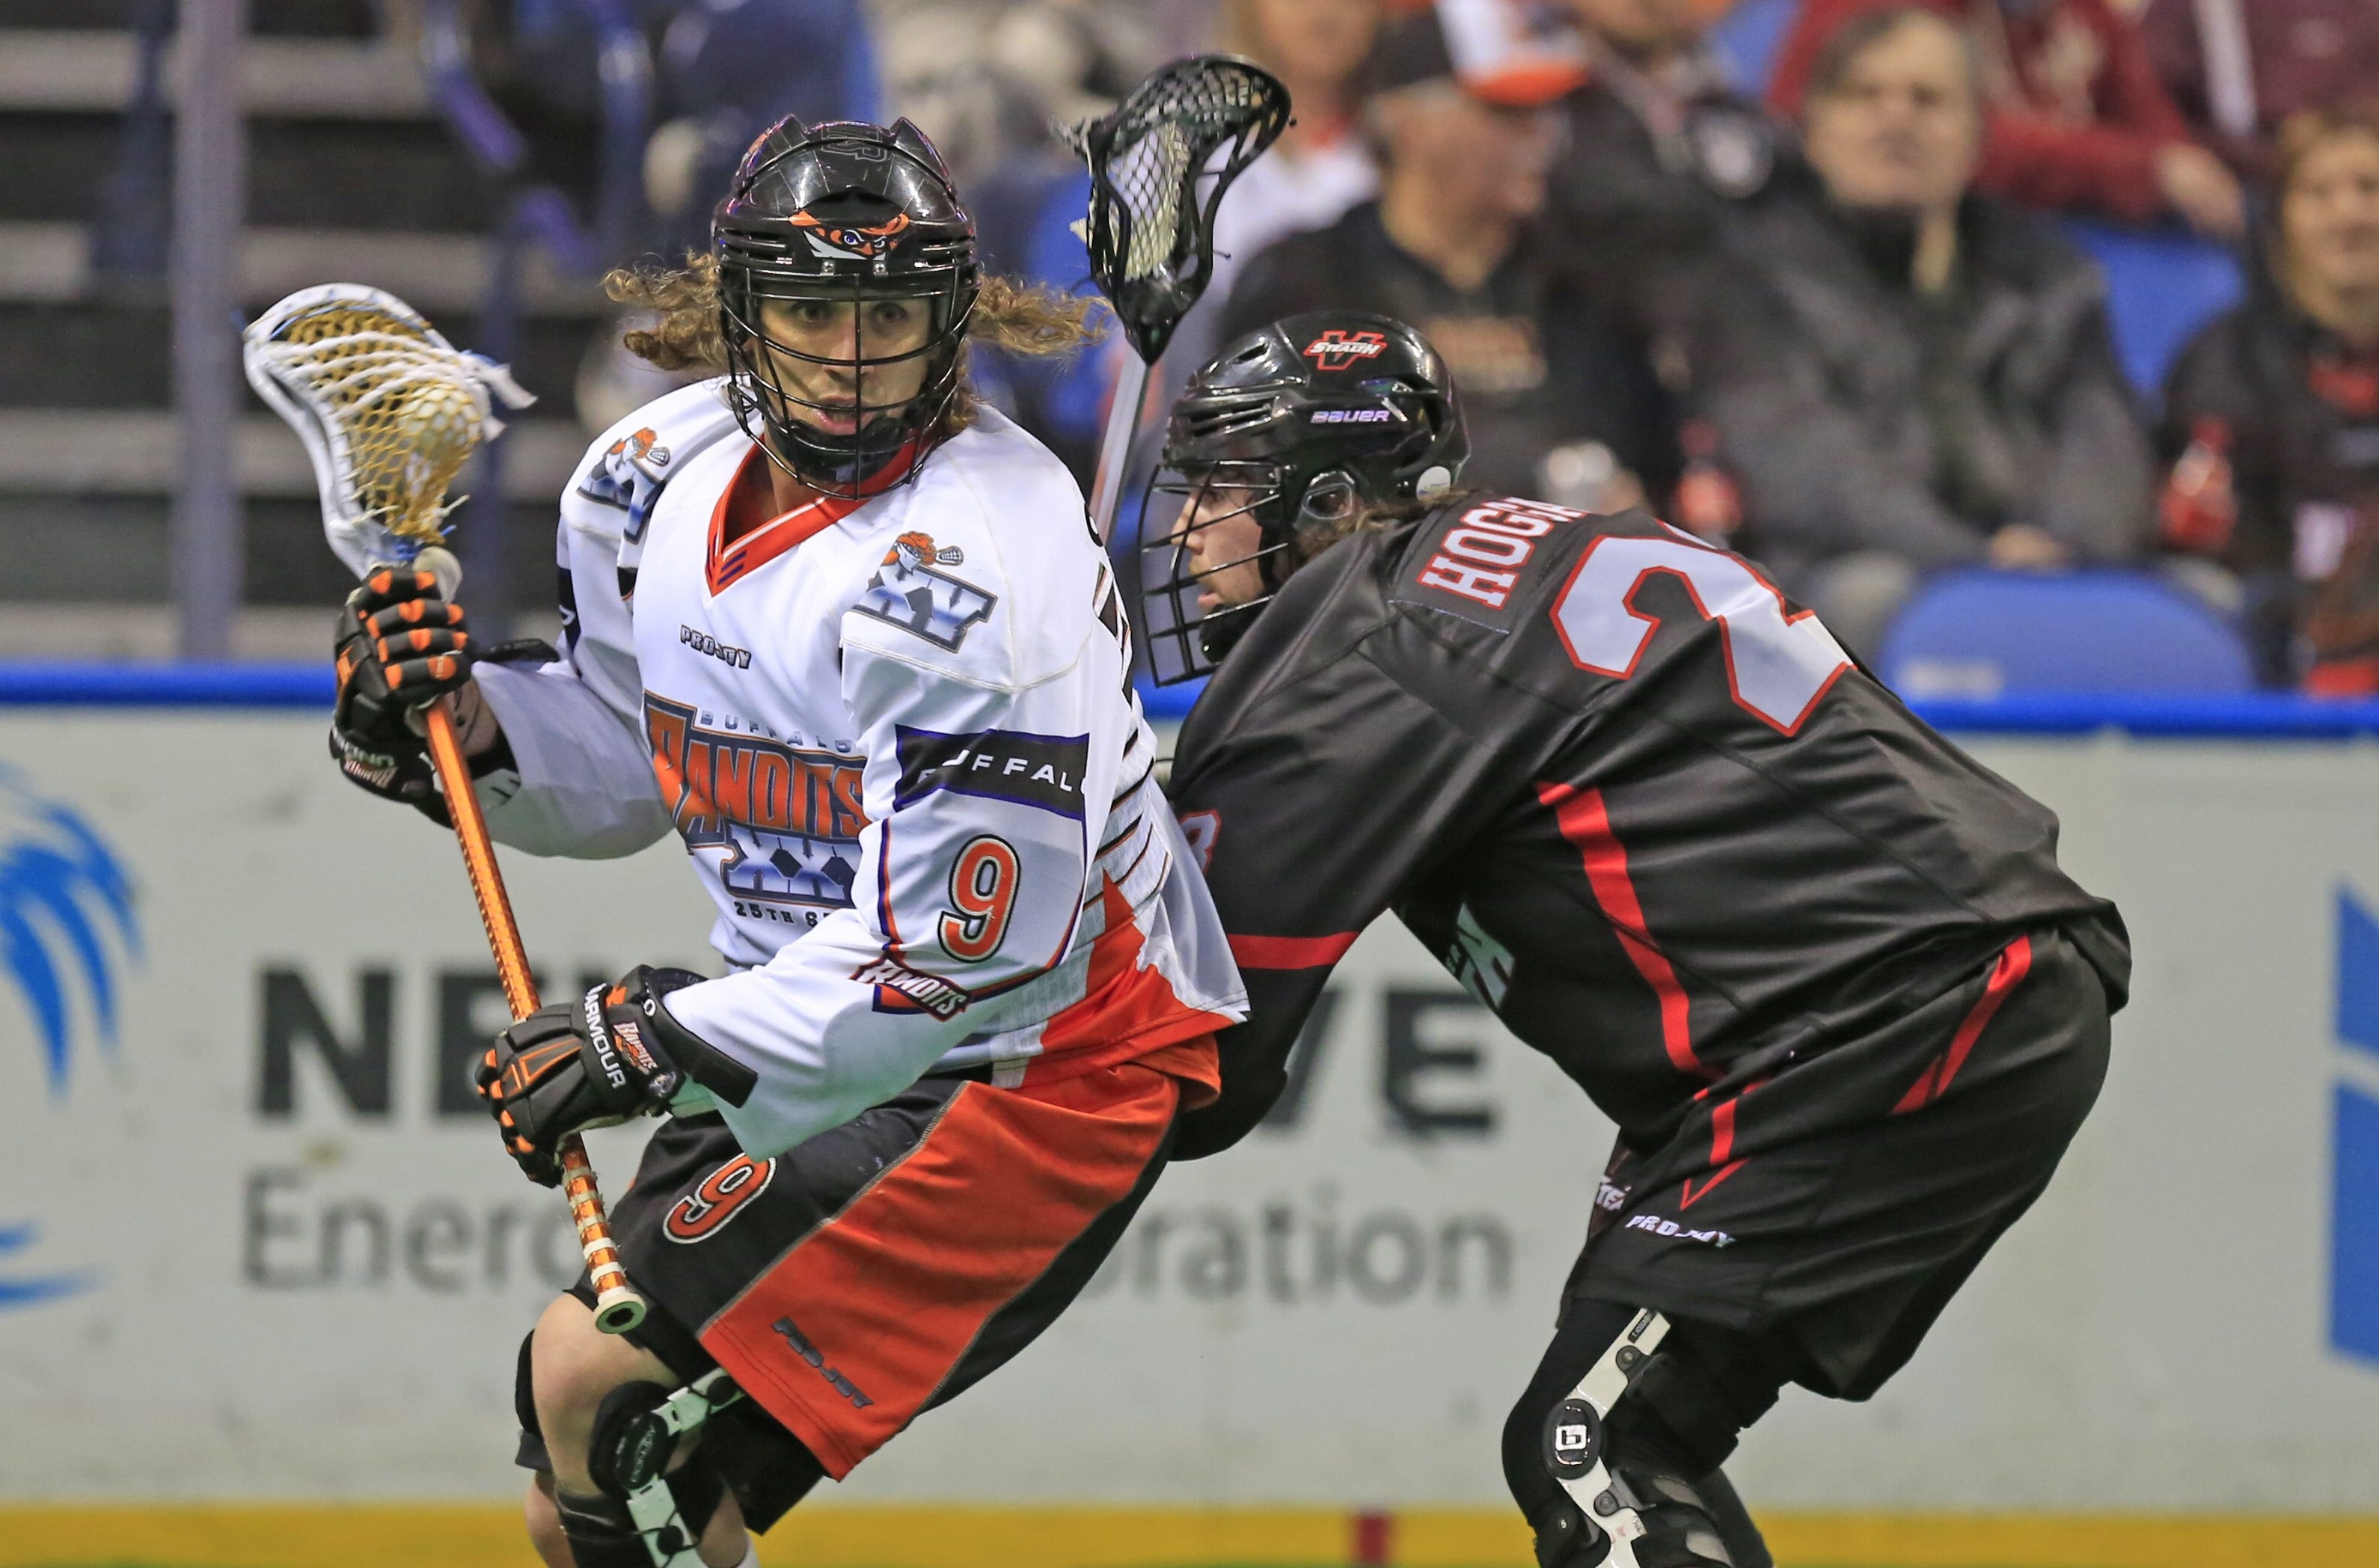 The Bandits' Mark Steenhuis works around Vancouver's Thomas Hoggarth during action at First Niagara Center.